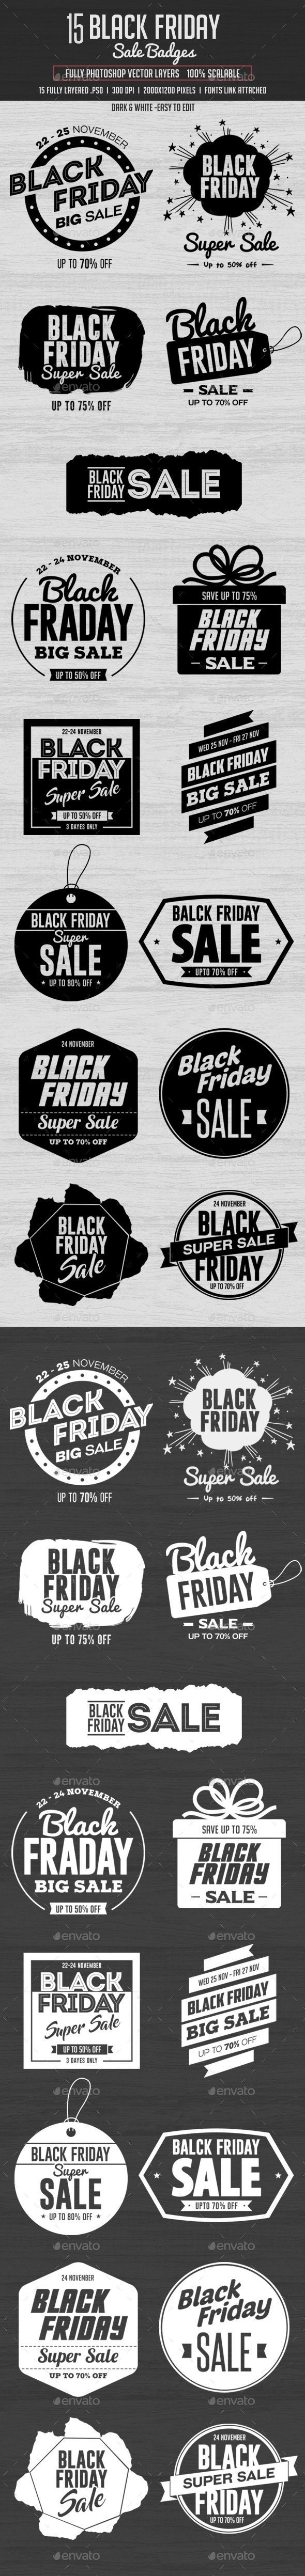 15 Black Friday Sale Badges  — PSD Template #advertising #season • Download ➝ https://graphicriver.net/item/15-black-friday-sale-badges/18376401?ref=pxcr